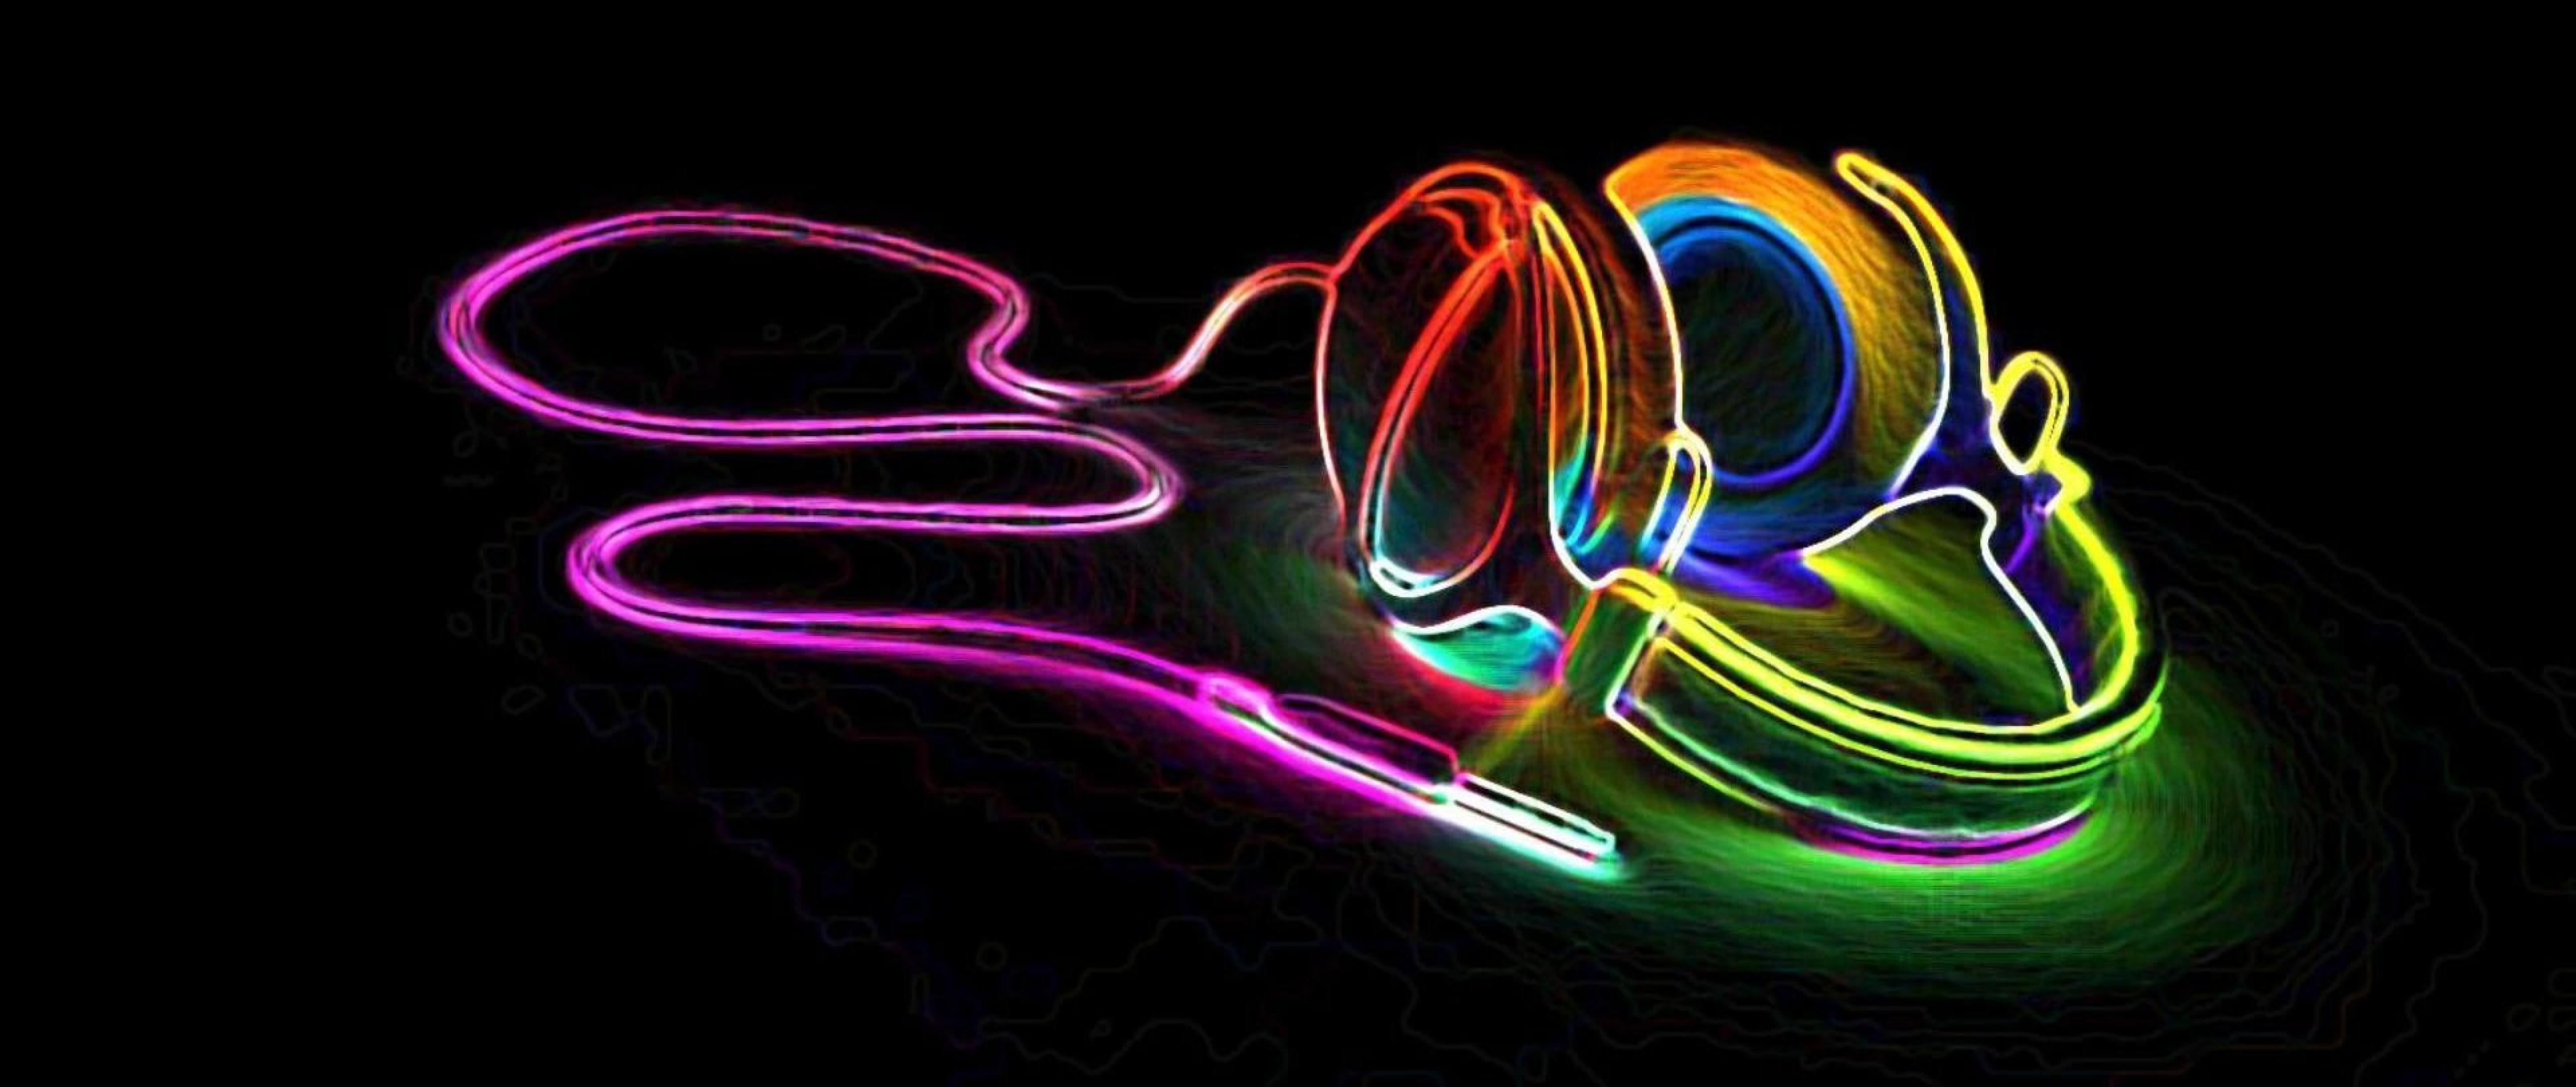 Music Colorful Headphones Full Hd Wallpaper for Desktop and Mobiles